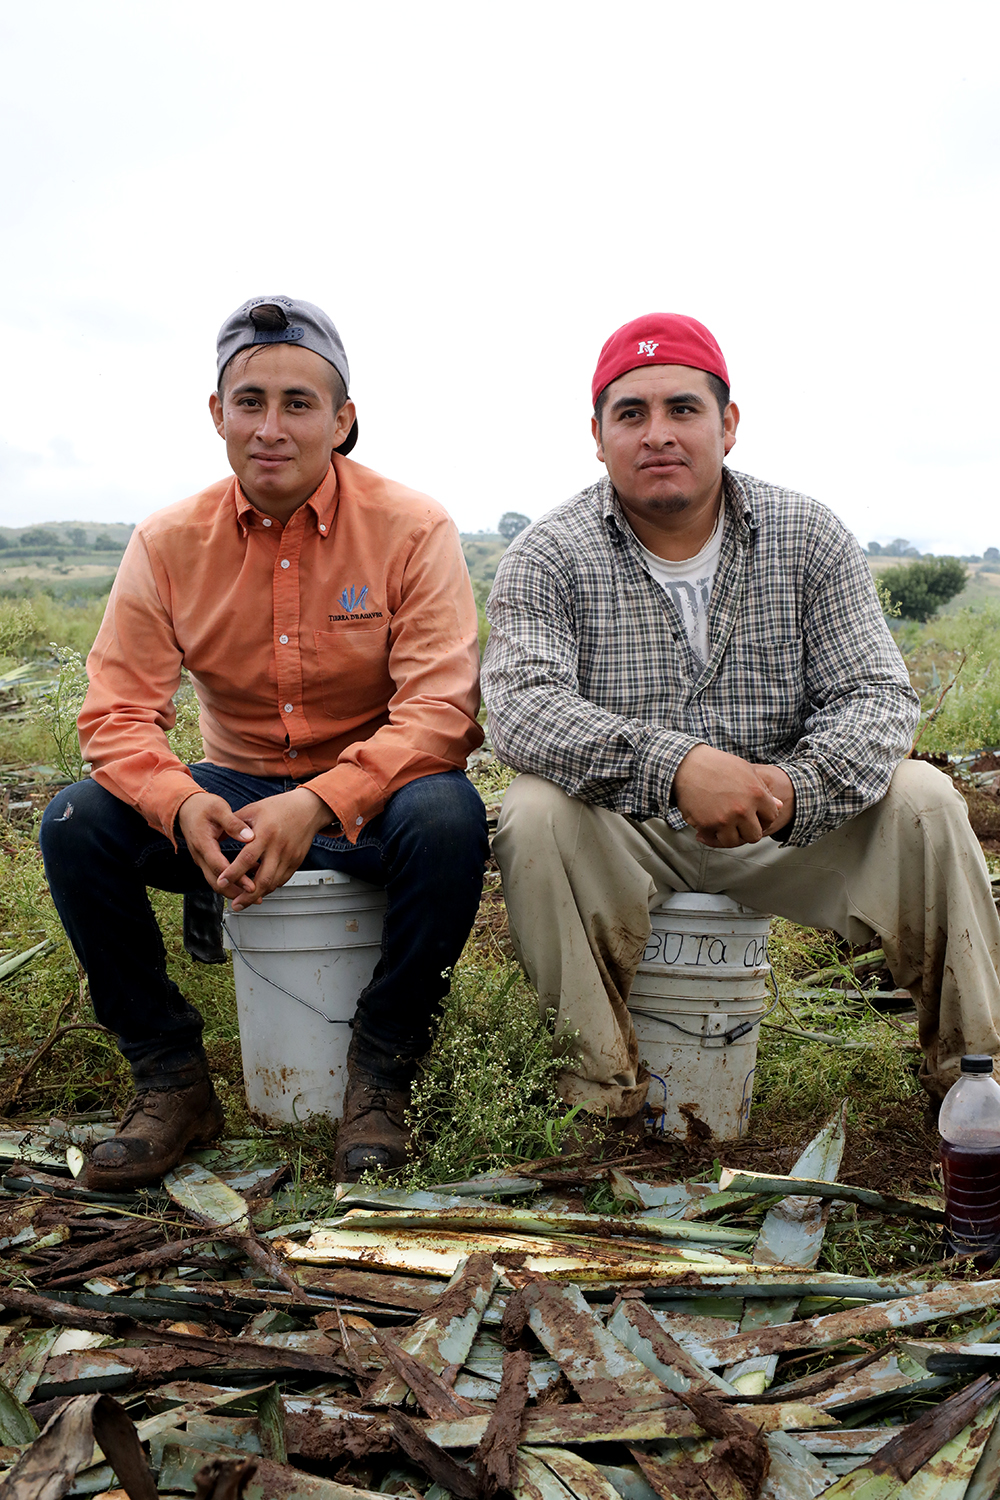 brothers in agave field